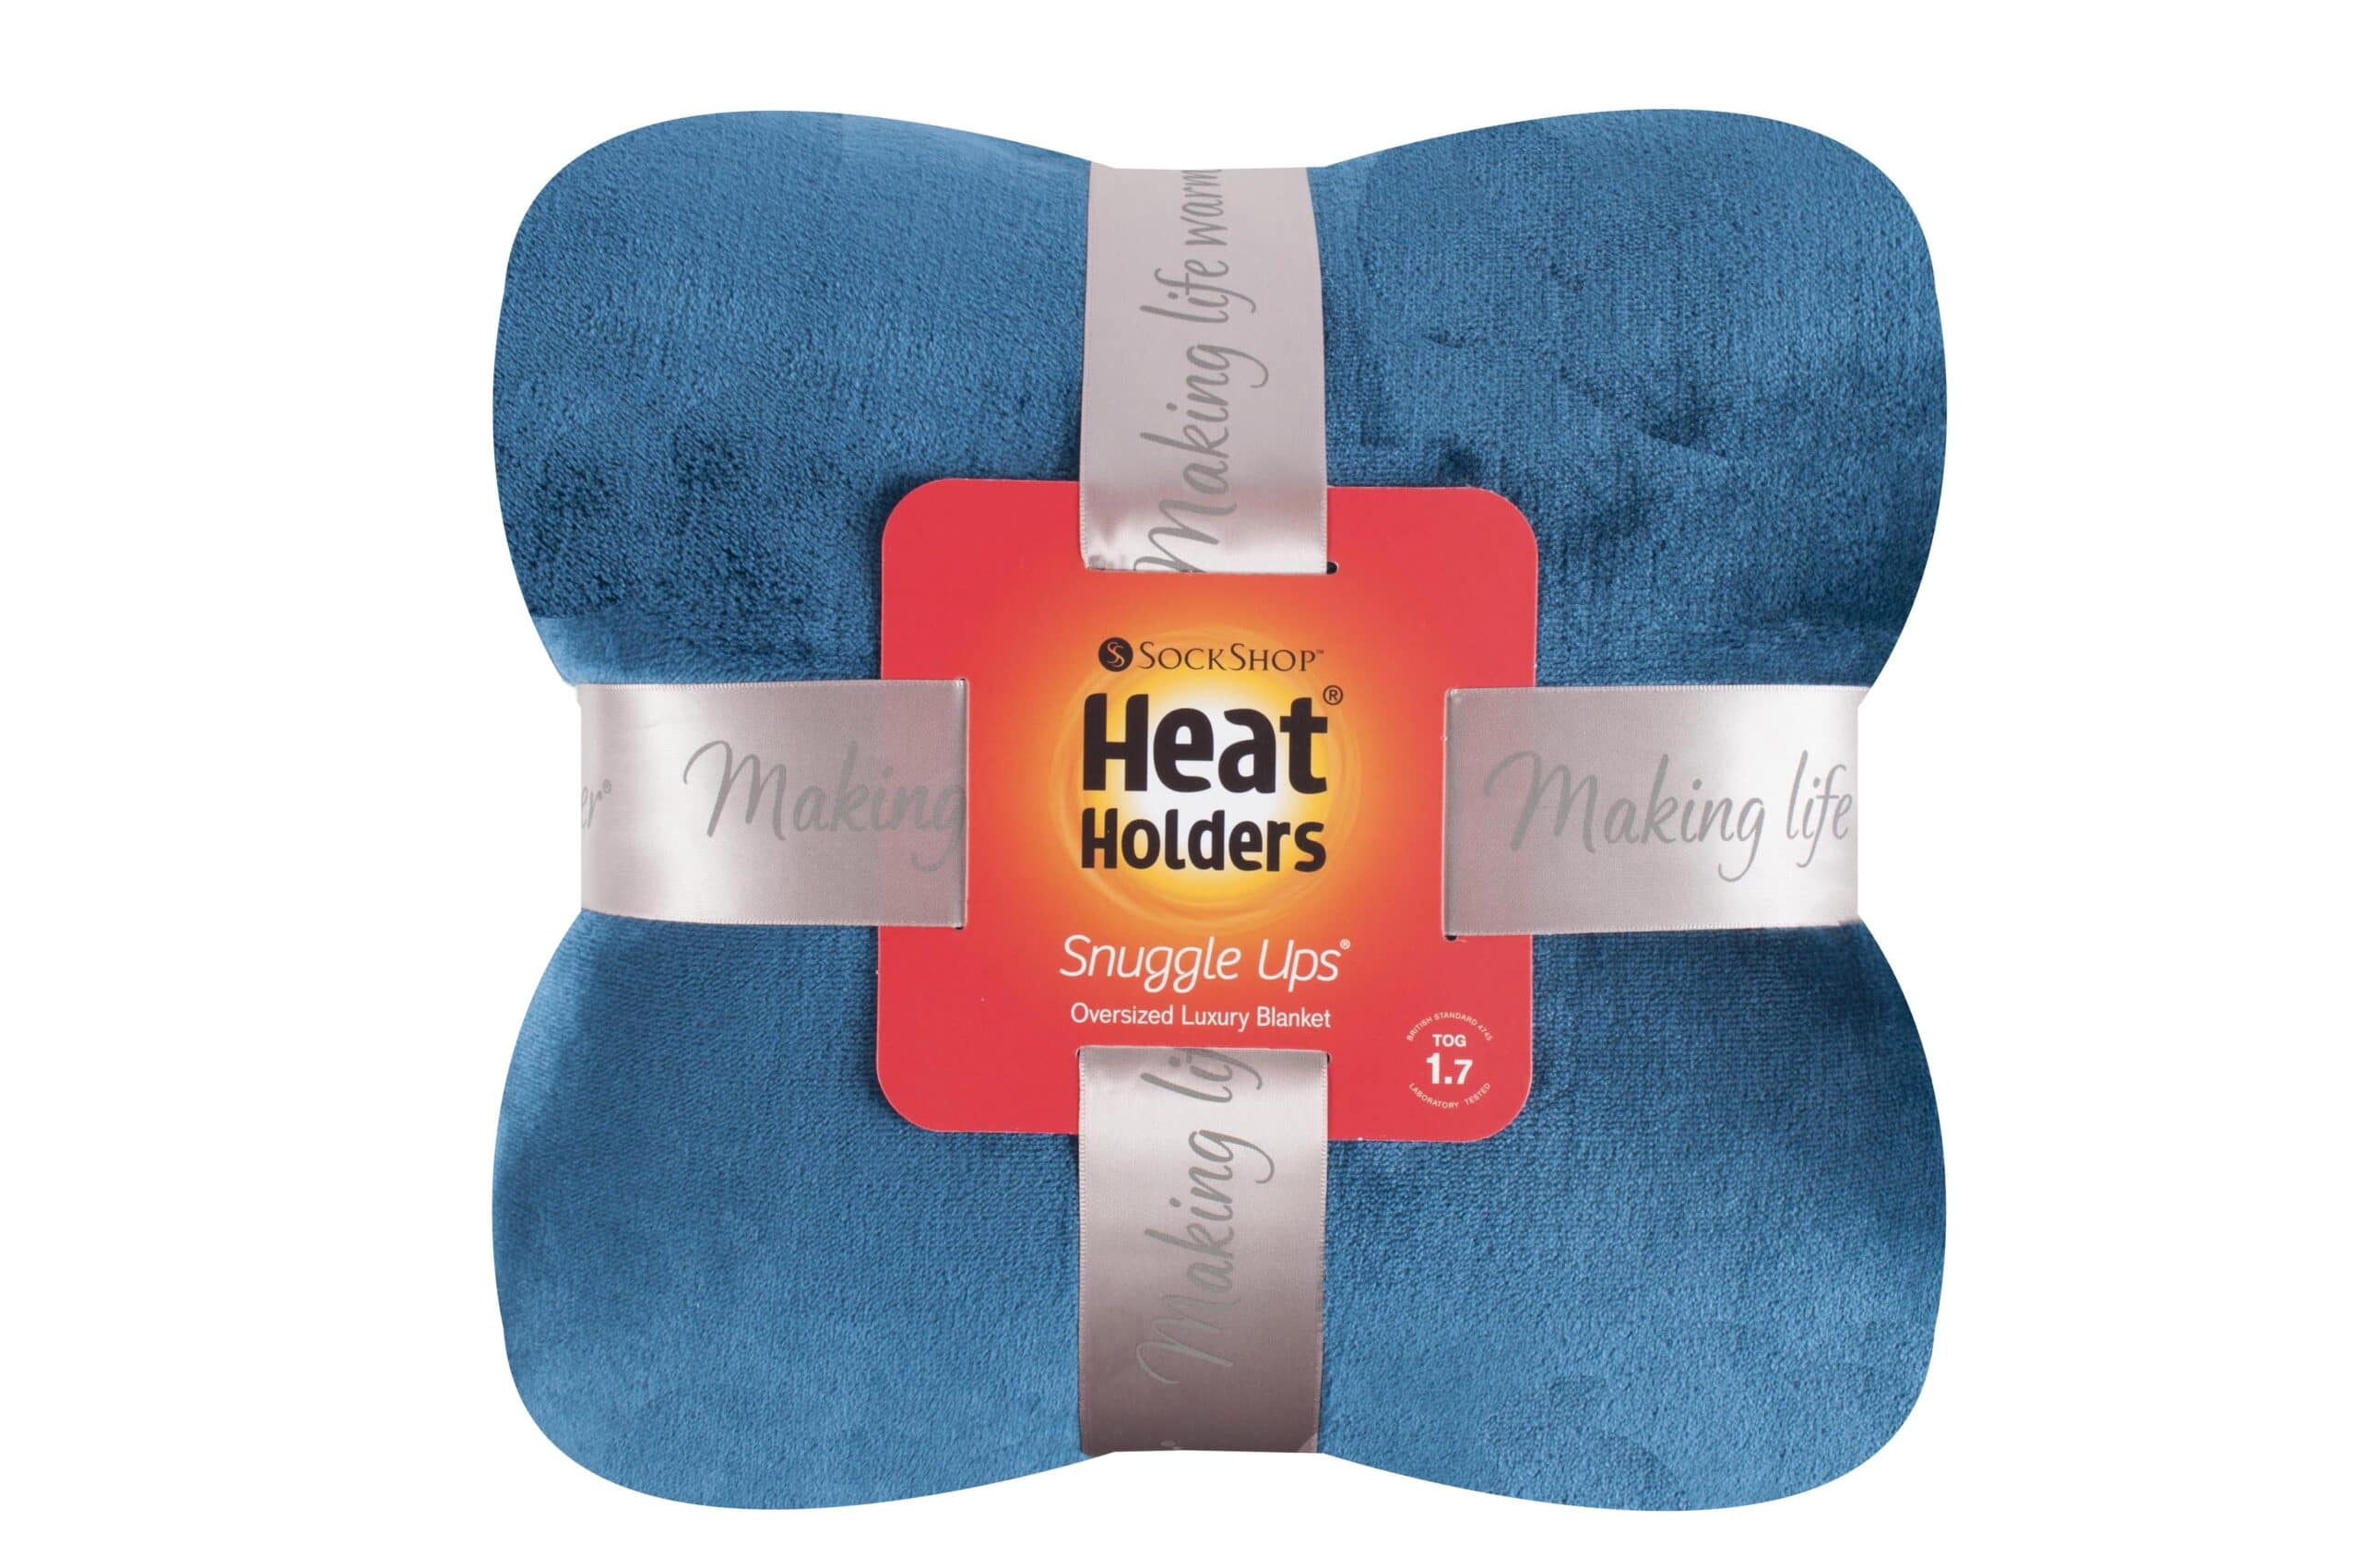 Heat Holders Snuggle Ups* Oversized Luxury Thermal Blanket. With many different uses this blanket can fit in any room of the house. It is also a perfect gift for Christmas or any occasion, as it comes packed in a box to make wrapping up easier! A ribbon is also wrapped around the blanket inside the box for those extra presentation points. Available in 16 bright and classic colours, so you can for-sure find one to match your room or pick whatever you fancy! Jays Sweet N Sour Life 2019 Holiday Gift Guide for Mom.